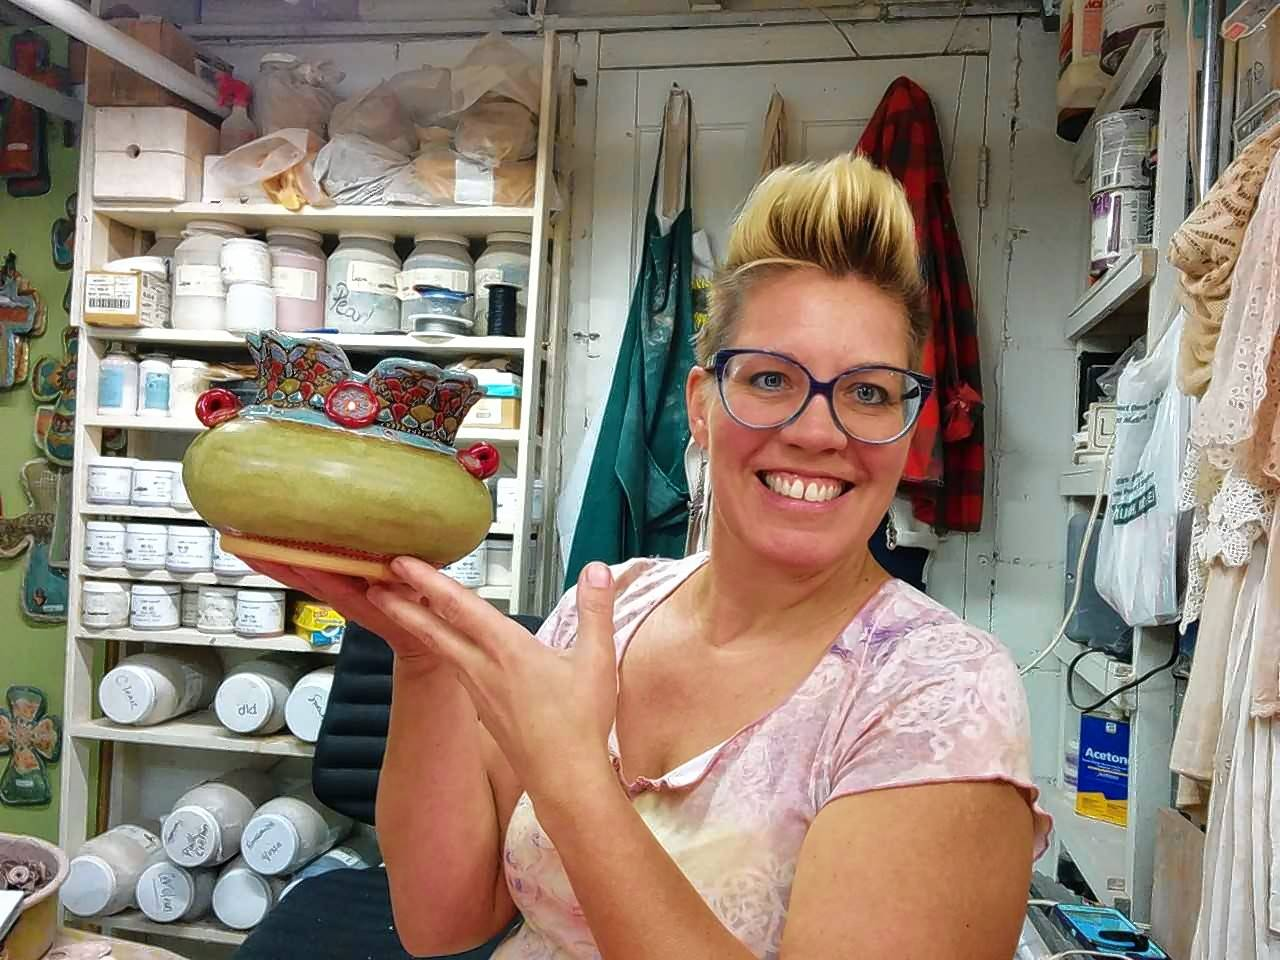 Laurie Pollpeter Eskenazi, a ceramic artist from Naperville, is among local artists who will be displaying items Saturday and Sunday, Sept. 16 and 17, during the Naperville Art League's 32nd annual Riverwalk Fine Art Fair.